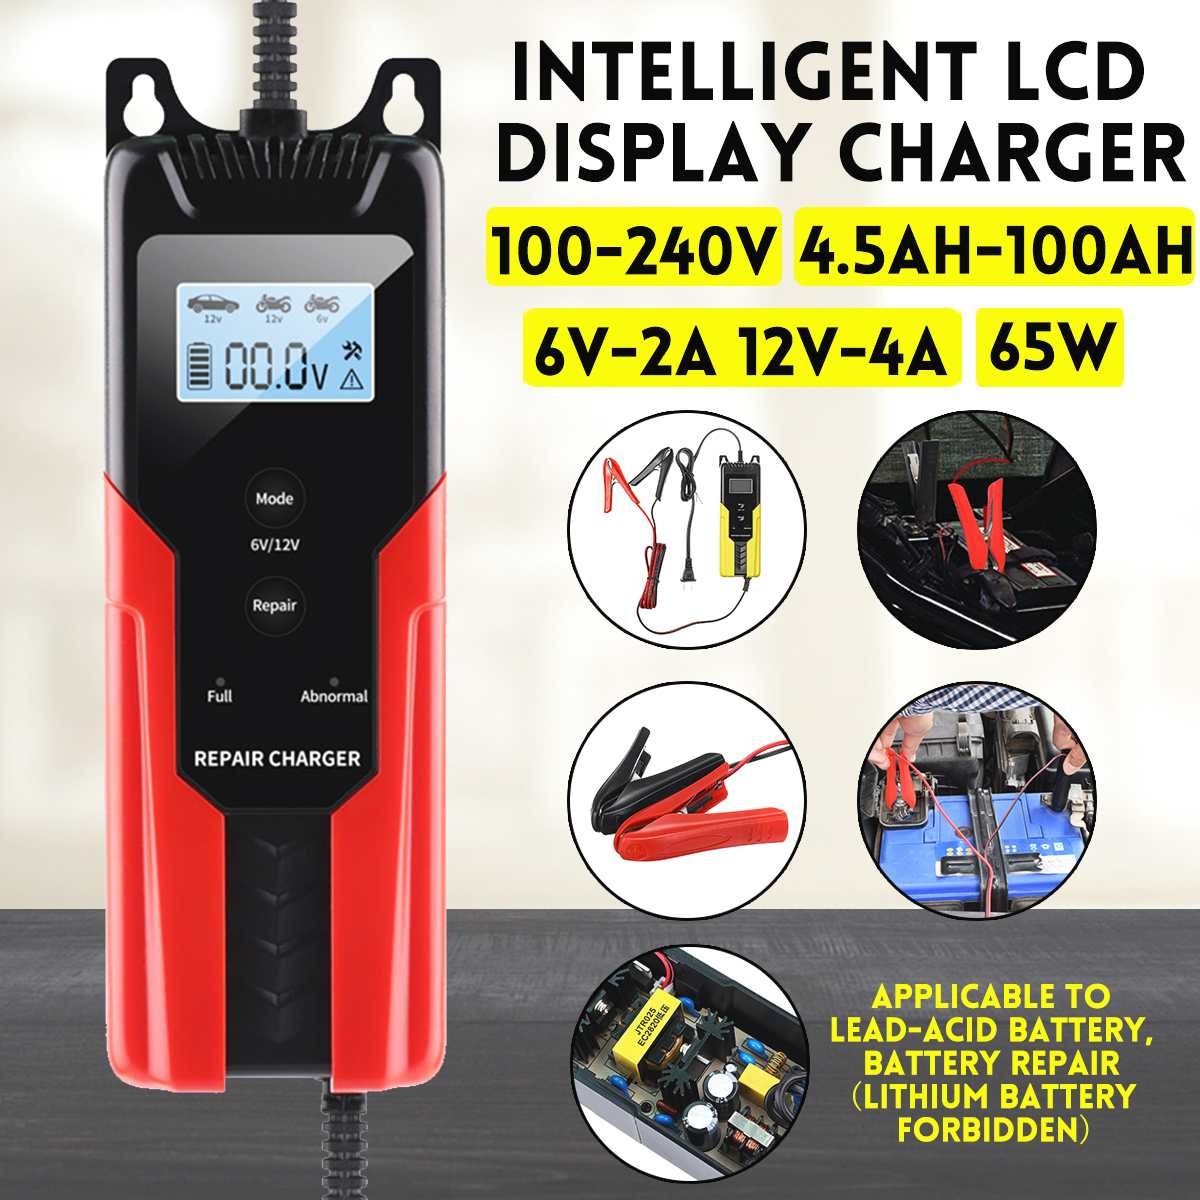 4.5-<font><b>100AH</b></font> Automatic Charging Motorcycle <font><b>Car</b></font> <font><b>Battery</b></font> Charger Intelligent Repair Type 6V-2A 12V-4A For Lead Acid Storage Charger image